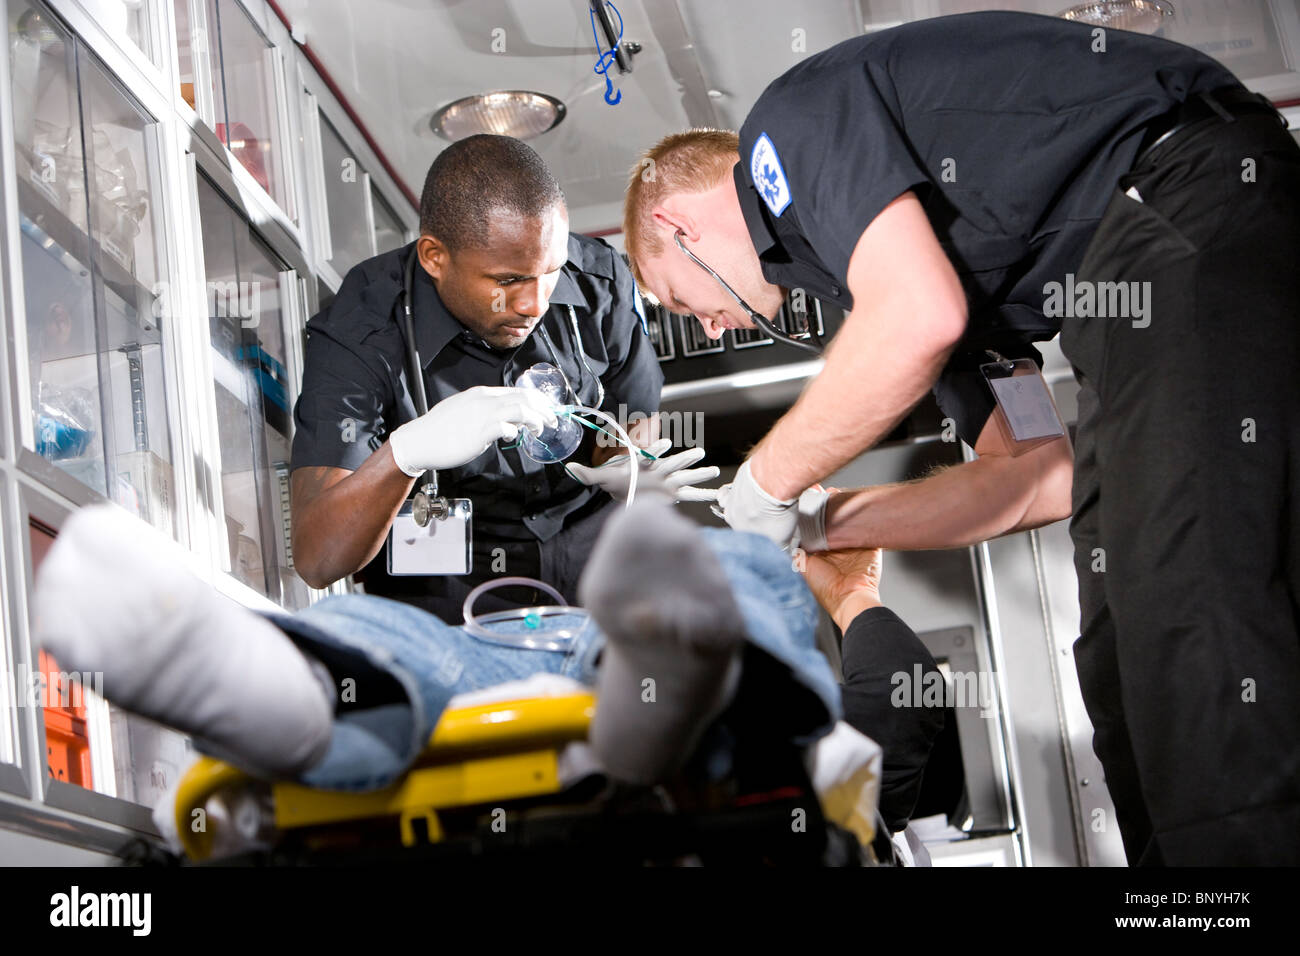 Paramedics caring for patient on stretcher in ambulance - Stock Image